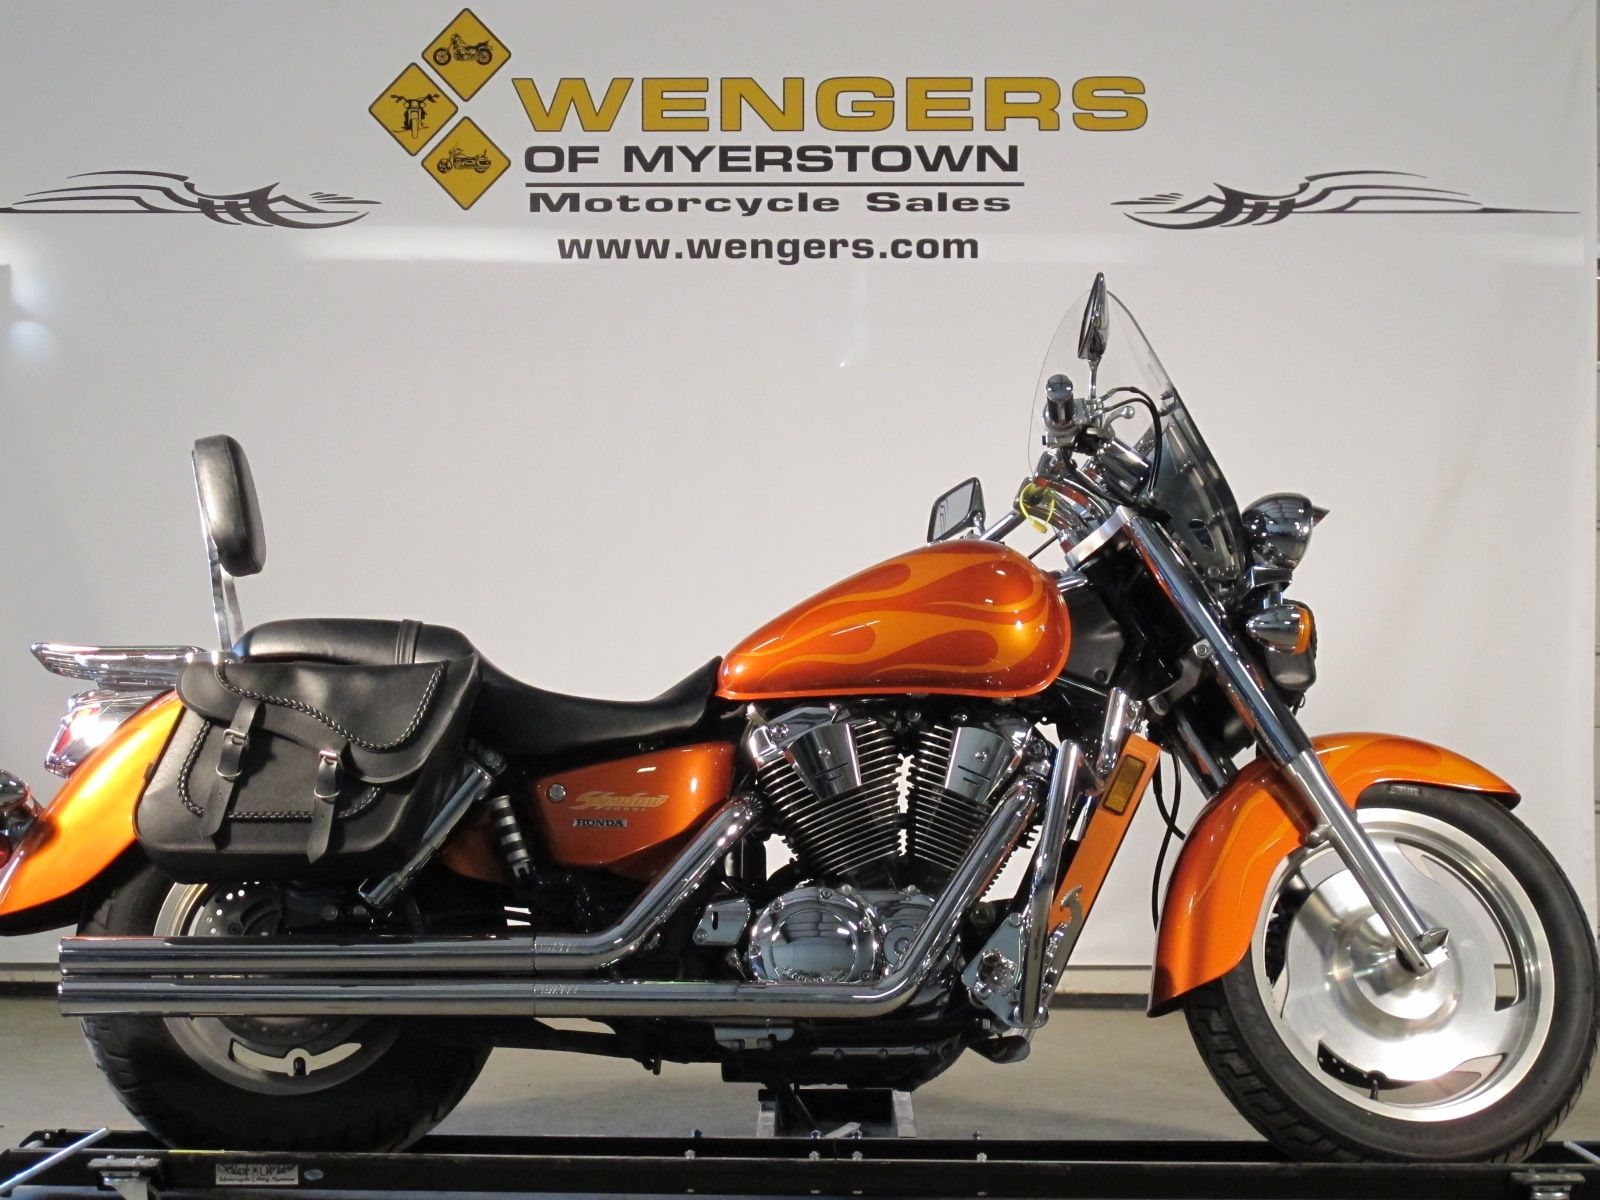 2002 honda shadow sabre 1100 for sale at wengers of myerstown only 4 250 sold [ 1600 x 1200 Pixel ]